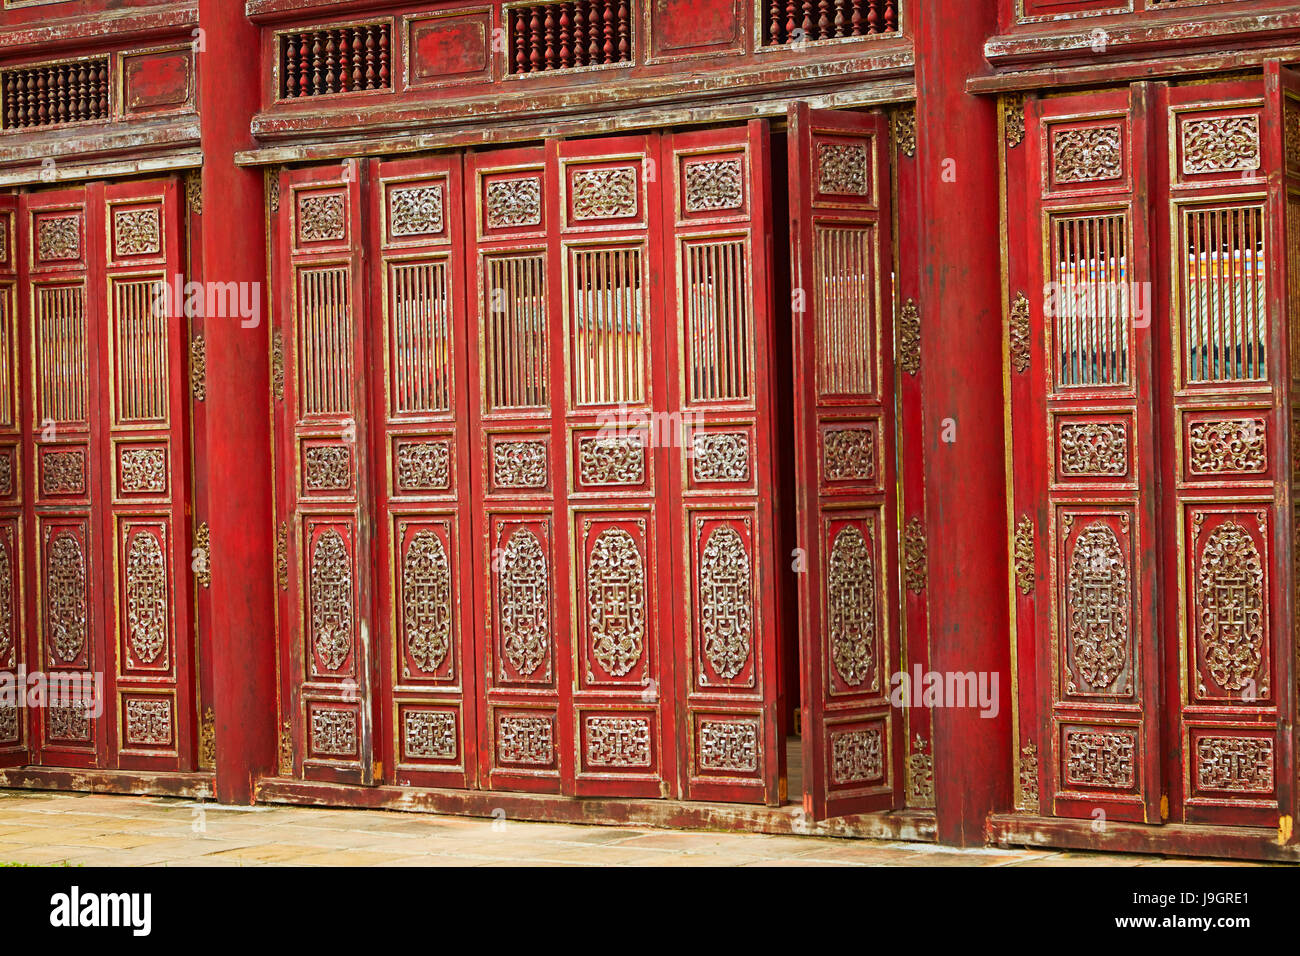 Red doors in the Forbidden Purple City, historic Hue Citadel (Imperial City), Hue, North Central Coast, Vietnam - Stock Image